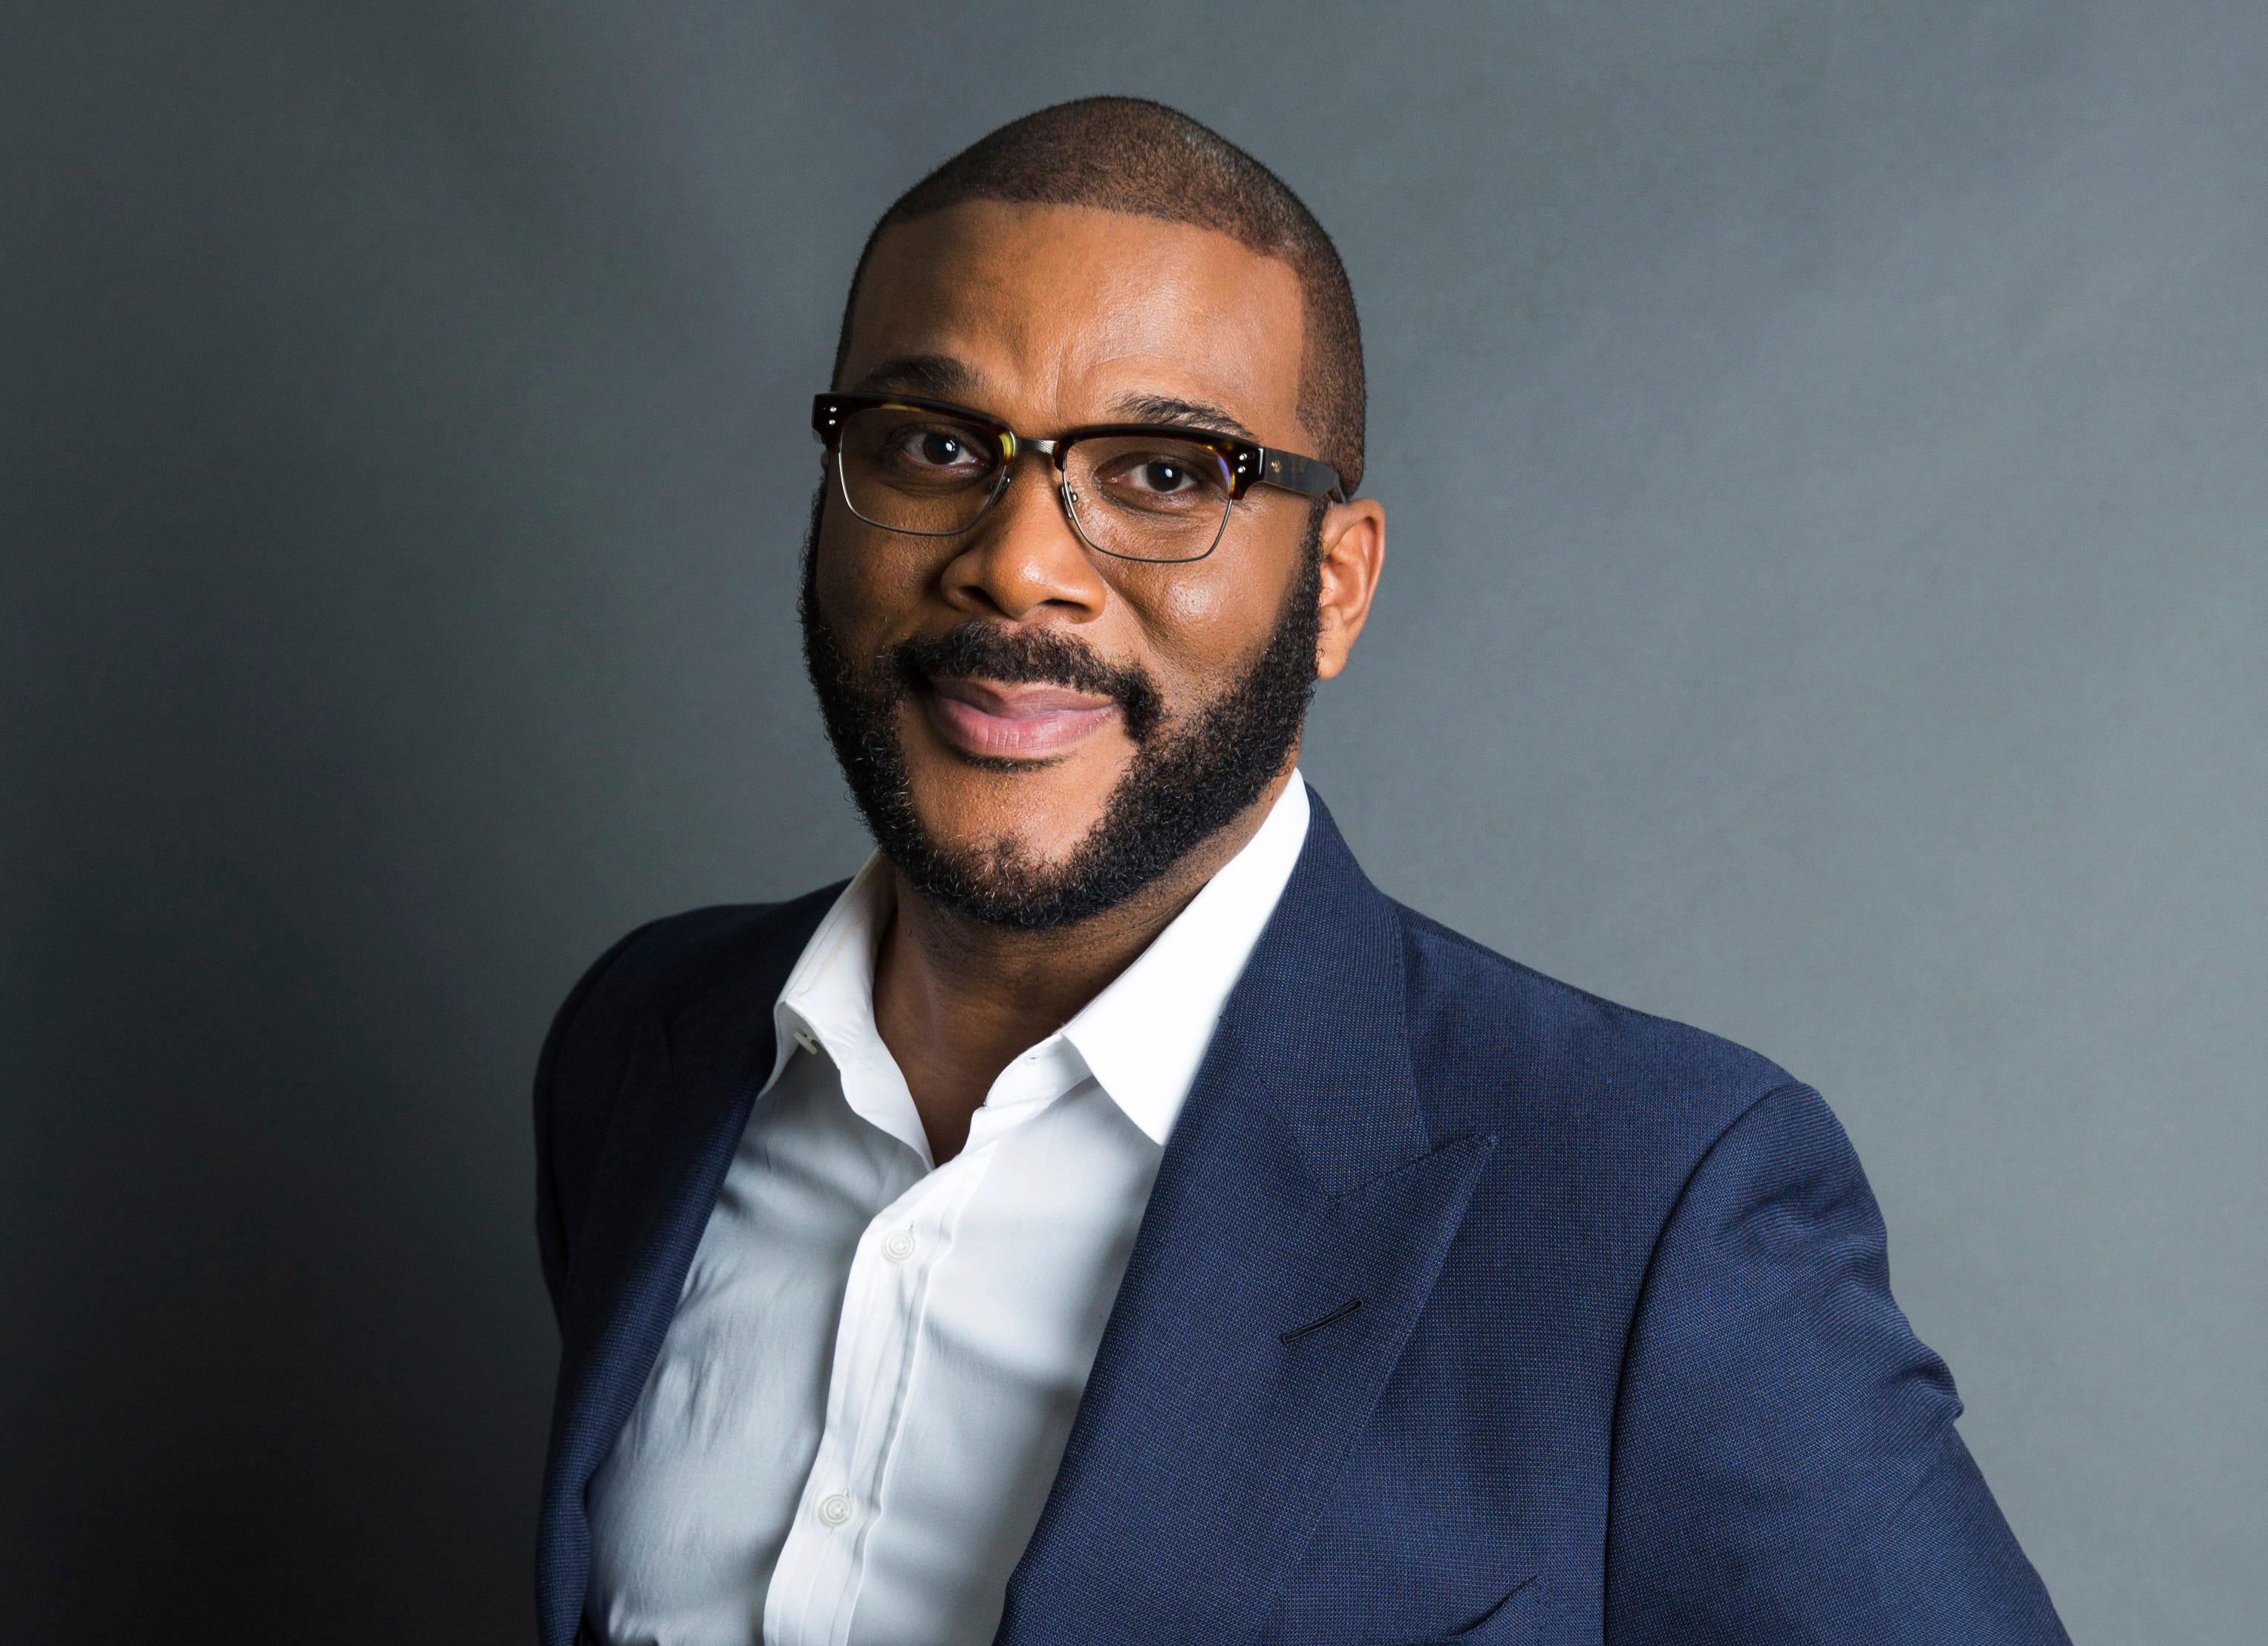 Tyler Perry has become Hollywood s latest billionaire, according to Forbes